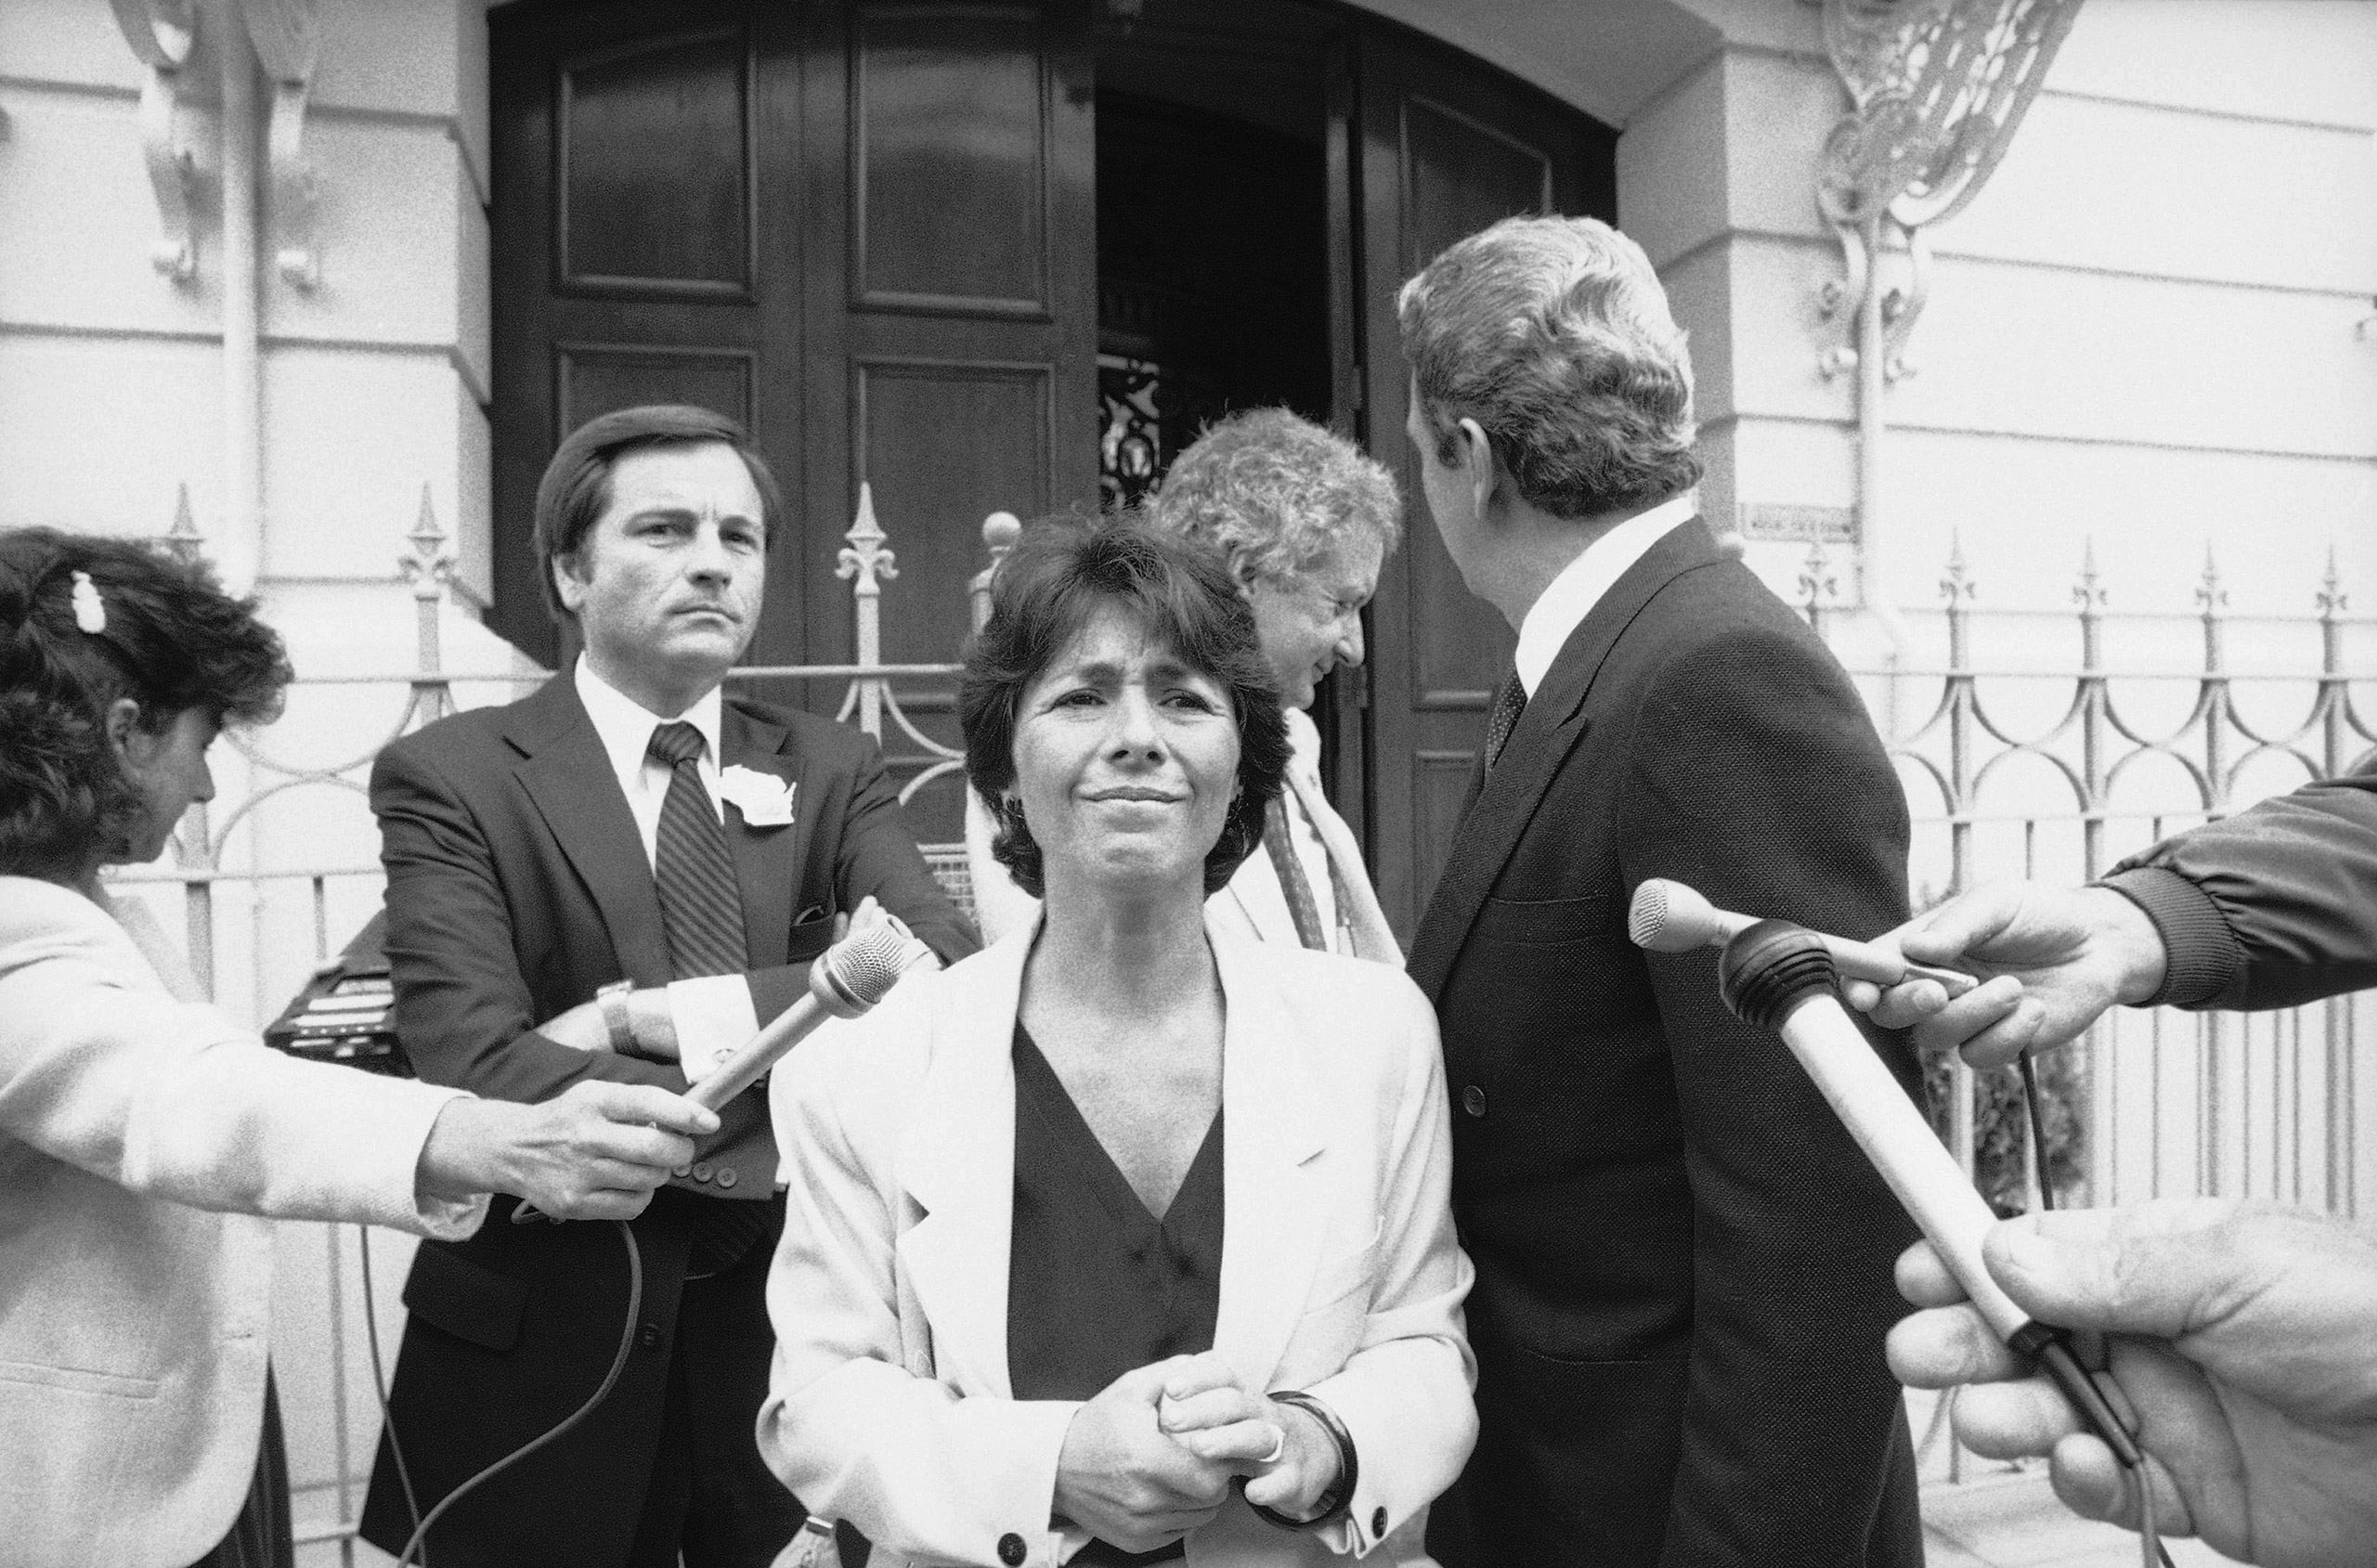 Rep. Barbara Boxer of Calif., addresses a news conference outside the office of the Soviet Union's Deputy Consul in San Francisco Tuesday, July 17, 1984.